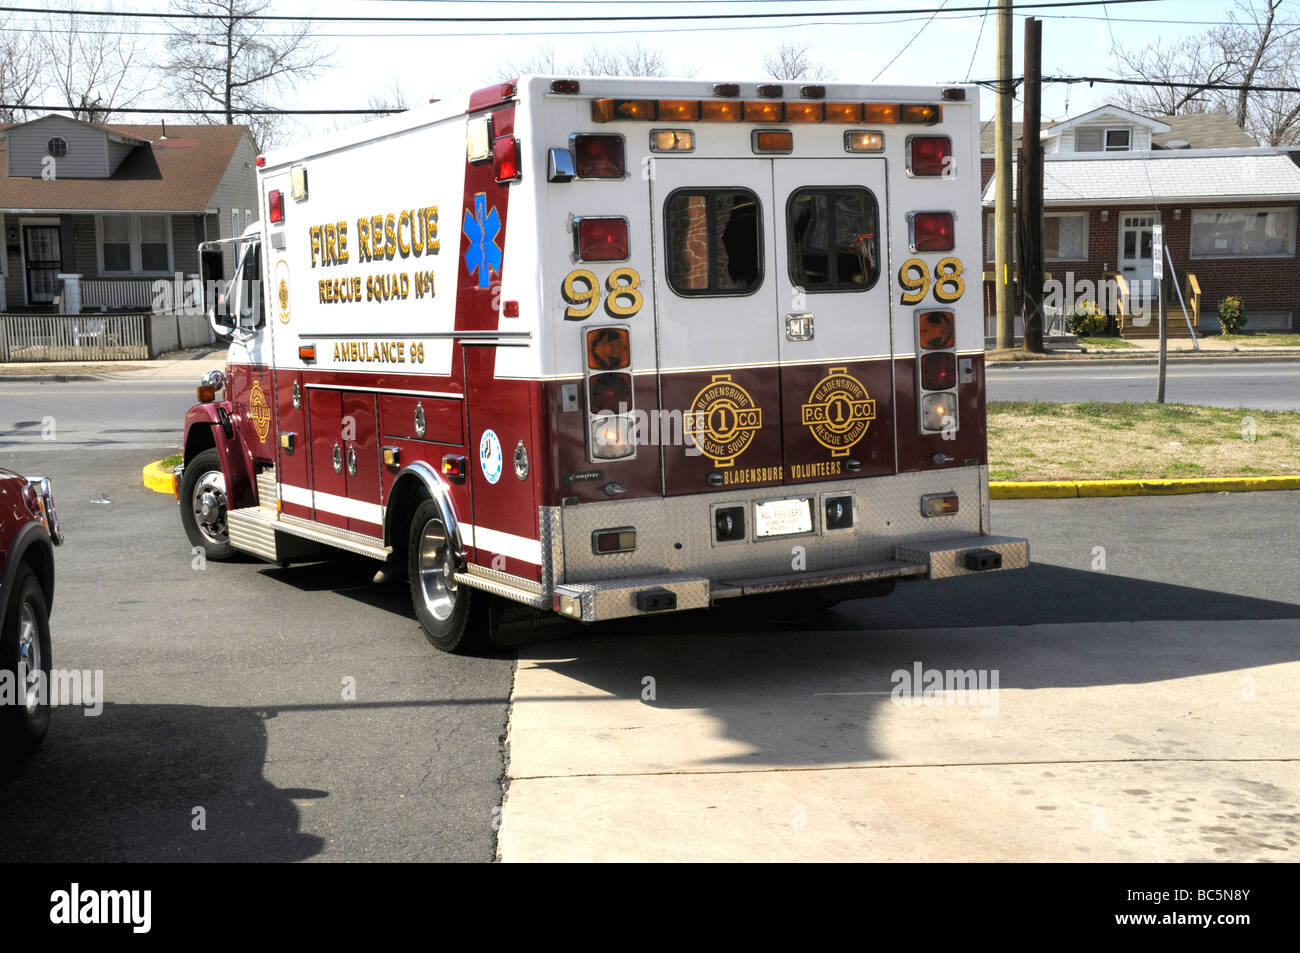 Ambulance Responding To An Emergency 911 Call From Their Firehouse Stock Photo